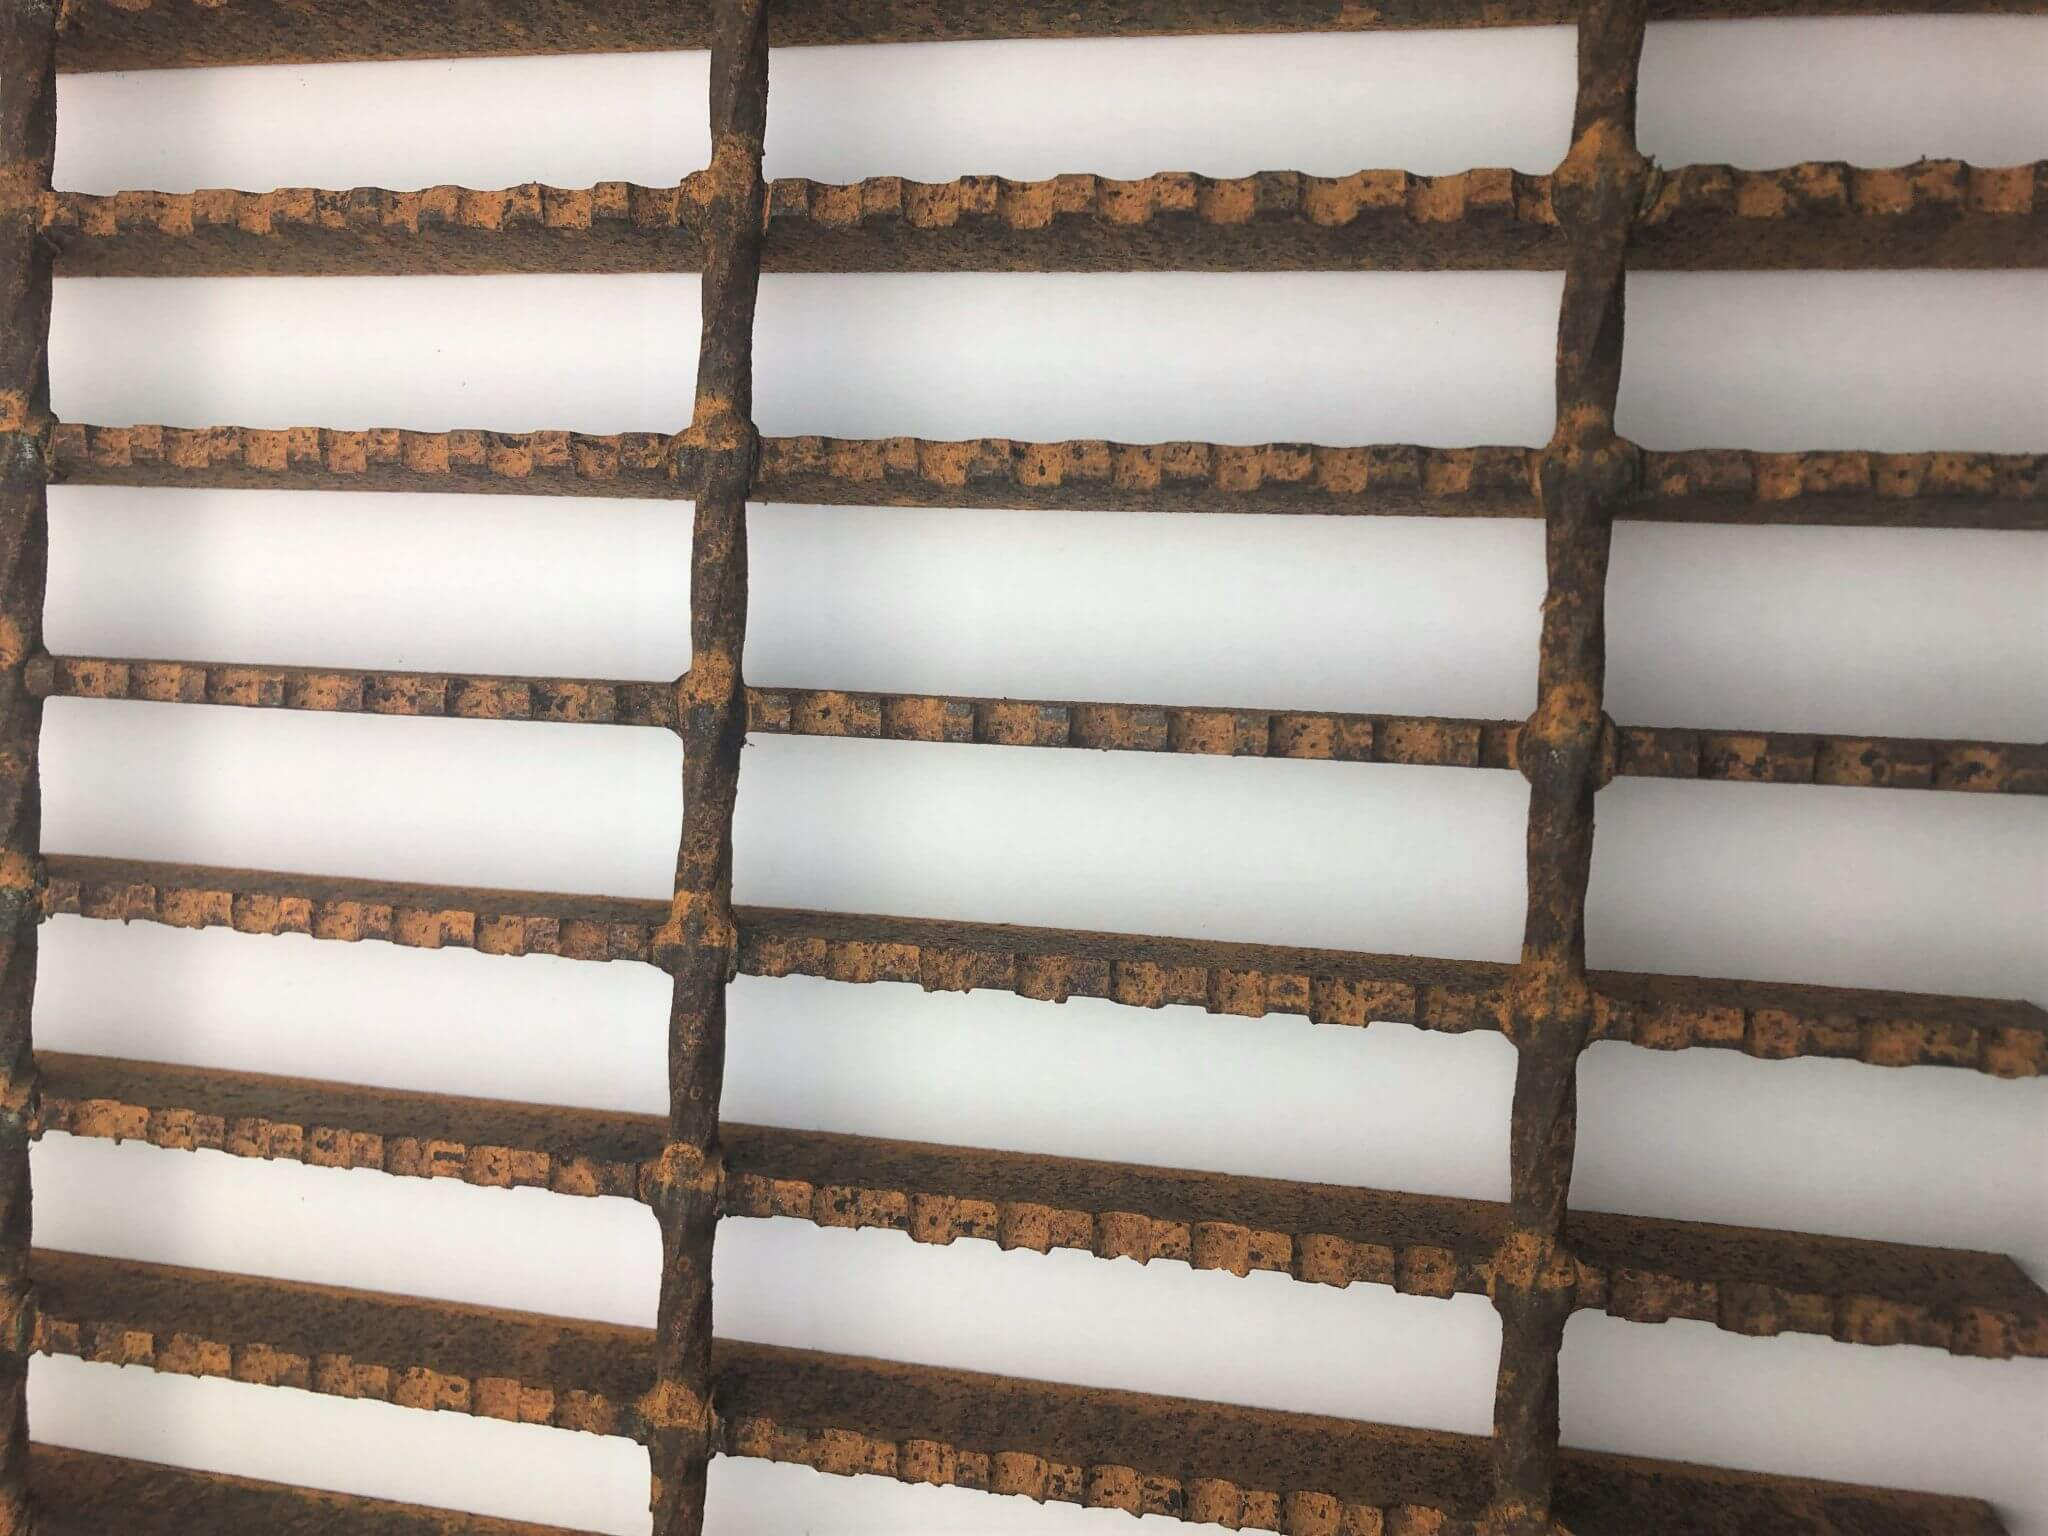 Grating Pattern A 25×5 Loadbar, 995x5800mm